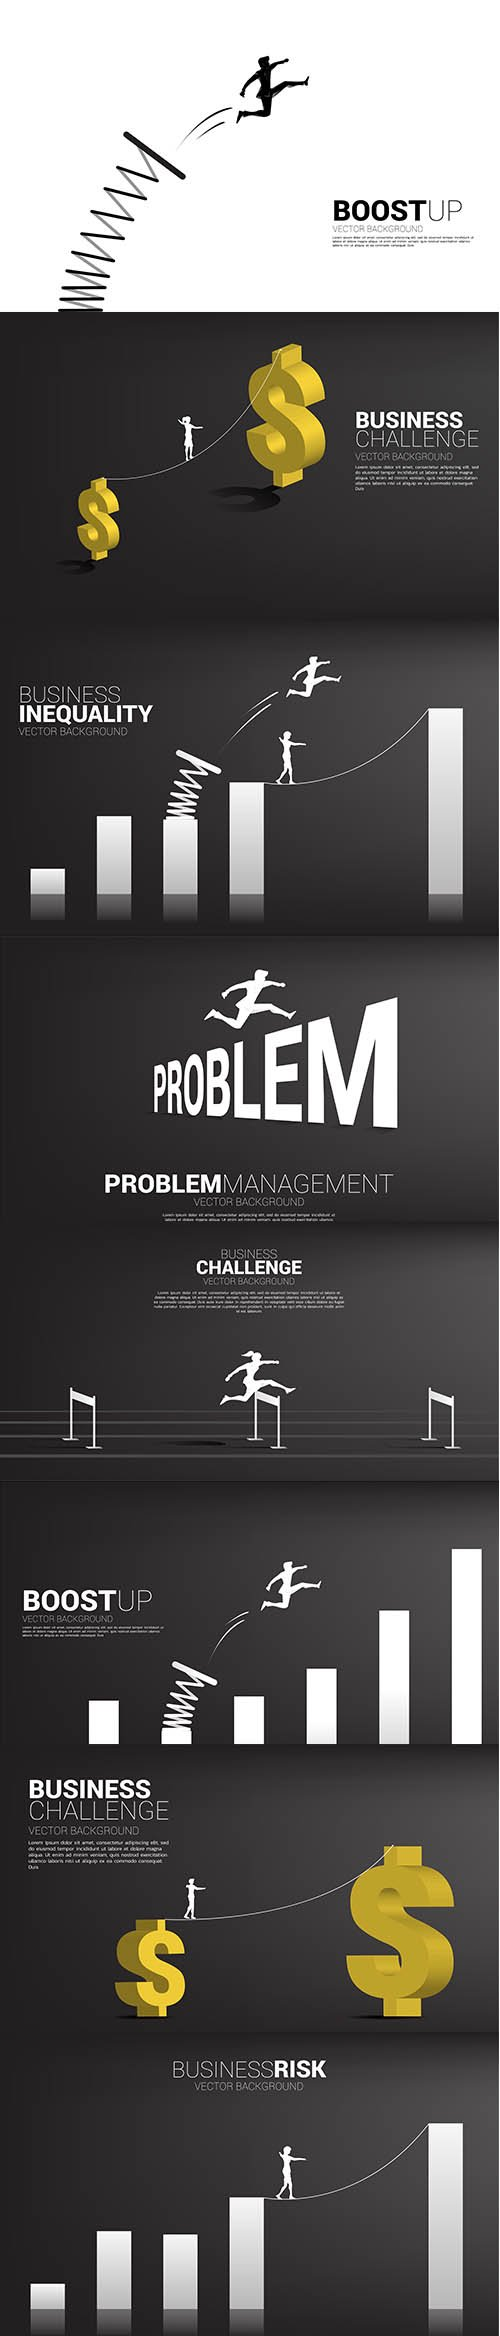 Silhouette businessman jumping across problem background concept for crisis